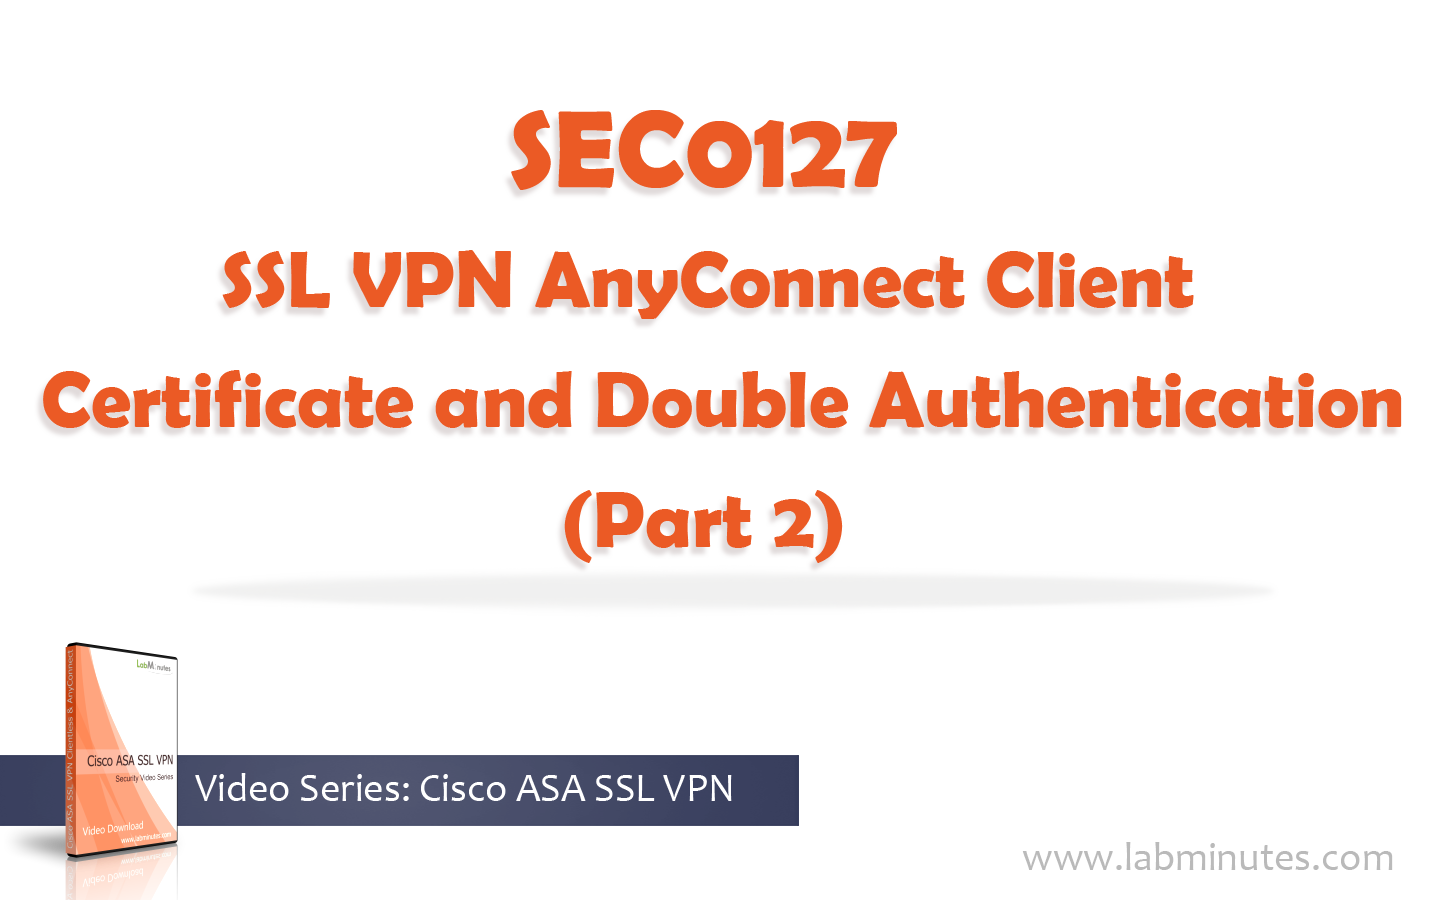 How To Configure Cisco Ssl Vpn Anyconnect Client Certificate And